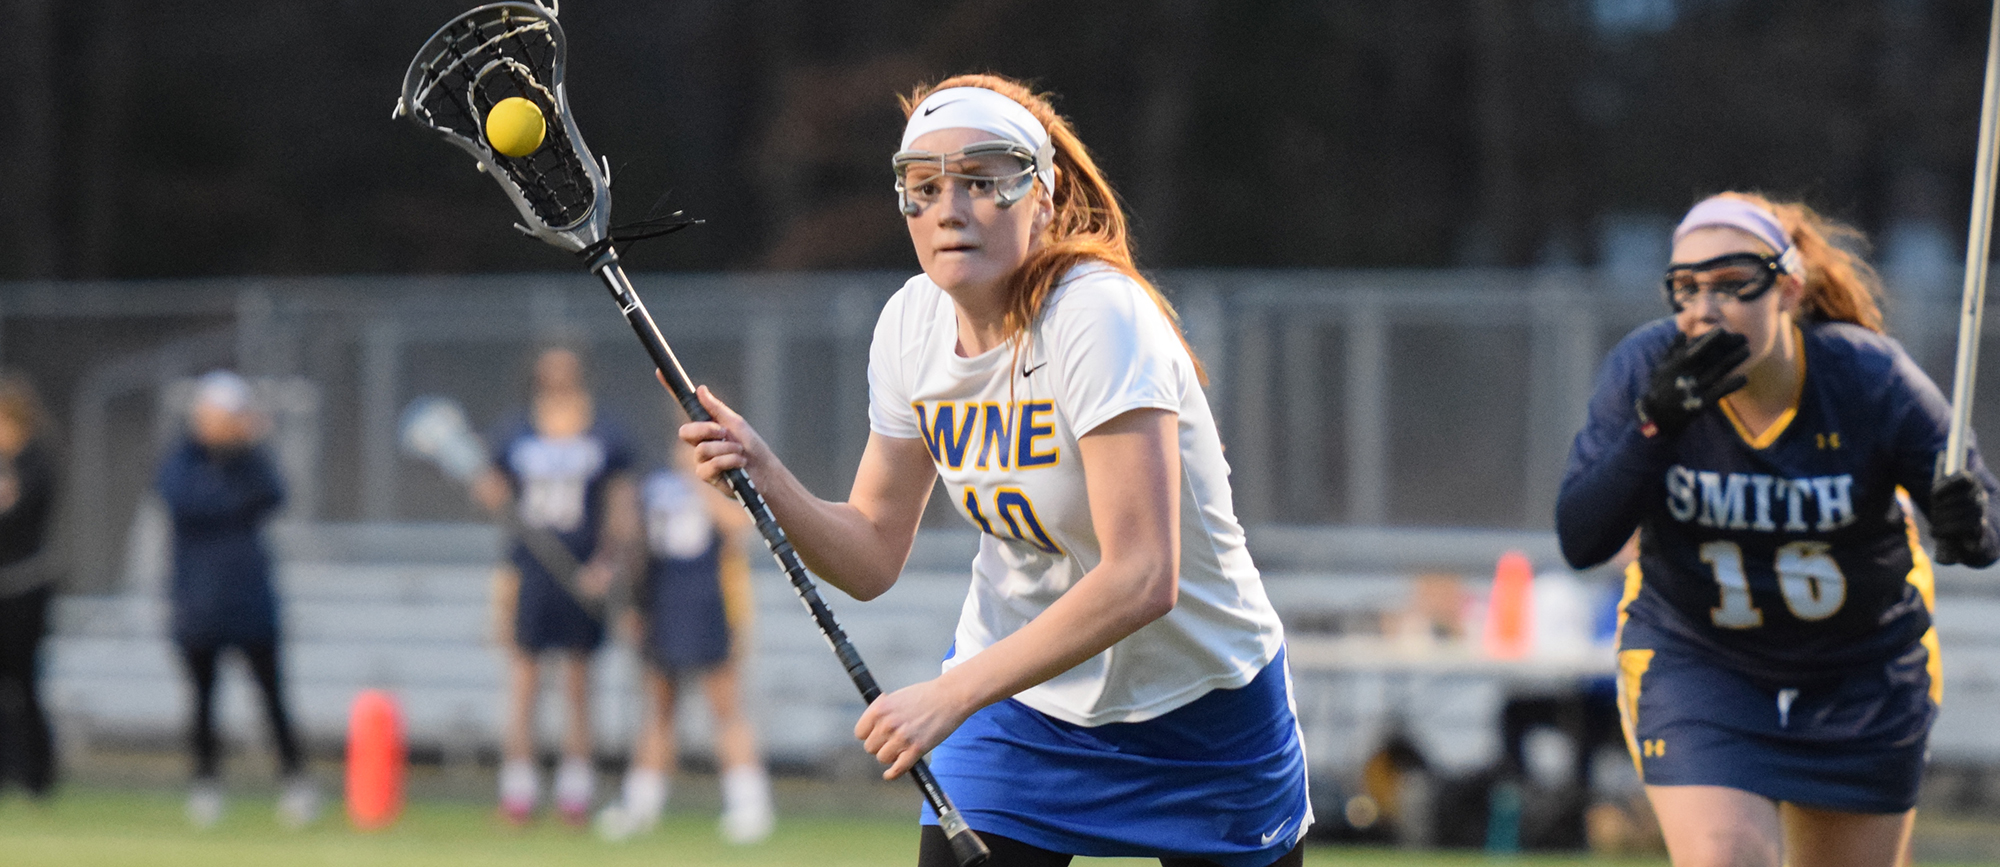 Sophomore Lindsey Phillips totaled five points (4 goals, 1 assist) in Western New England's 12-8 setback at Castleton on Tuesday. (Photo by Rachael Margossian)